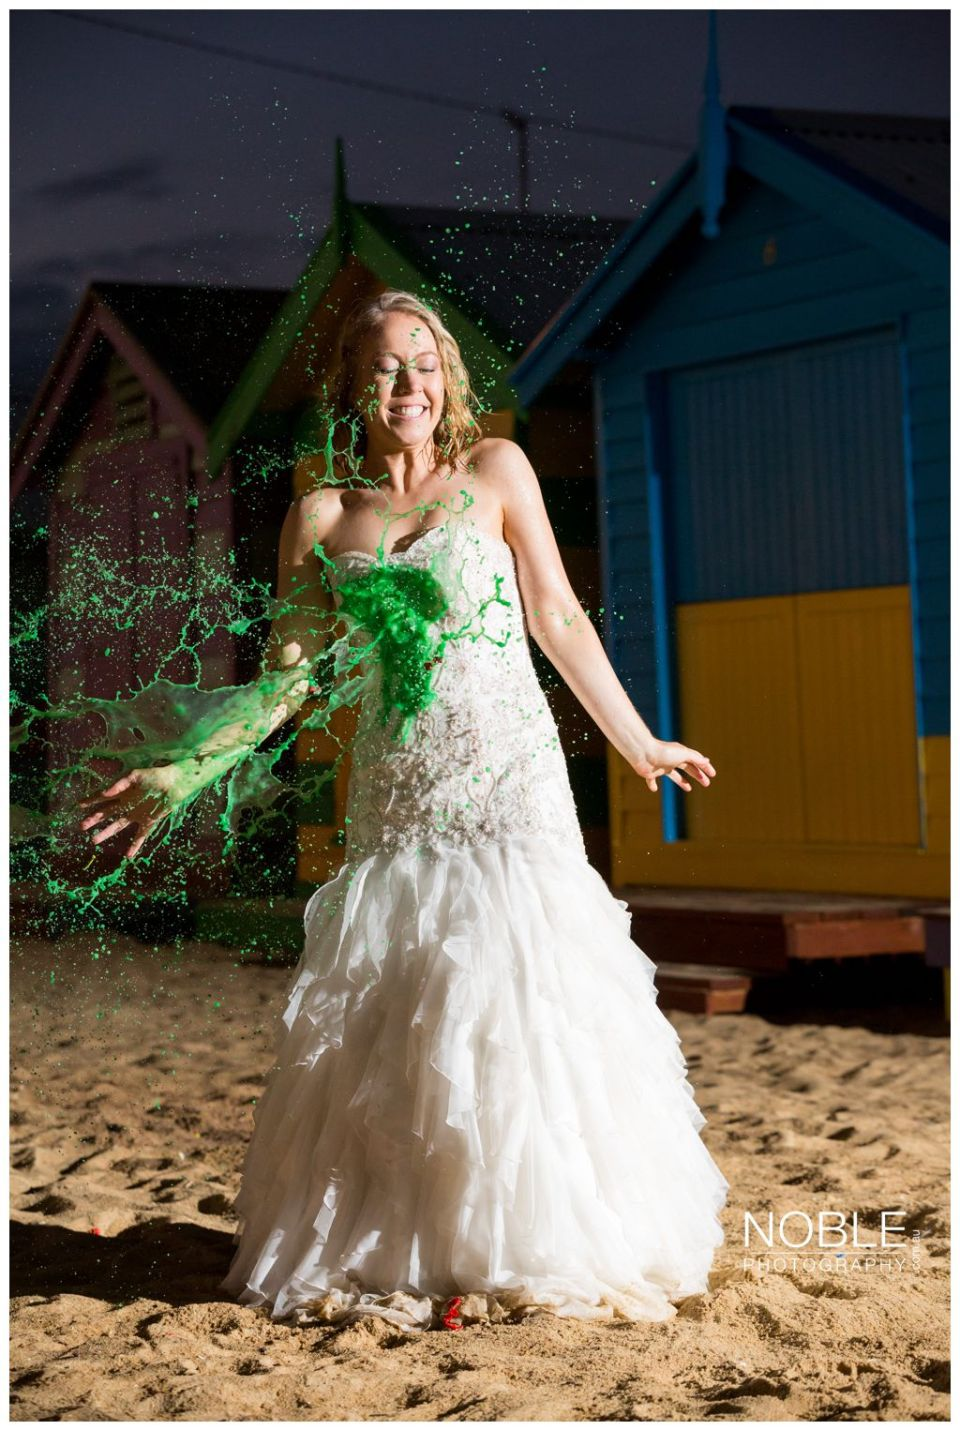 Paint on wedding dress